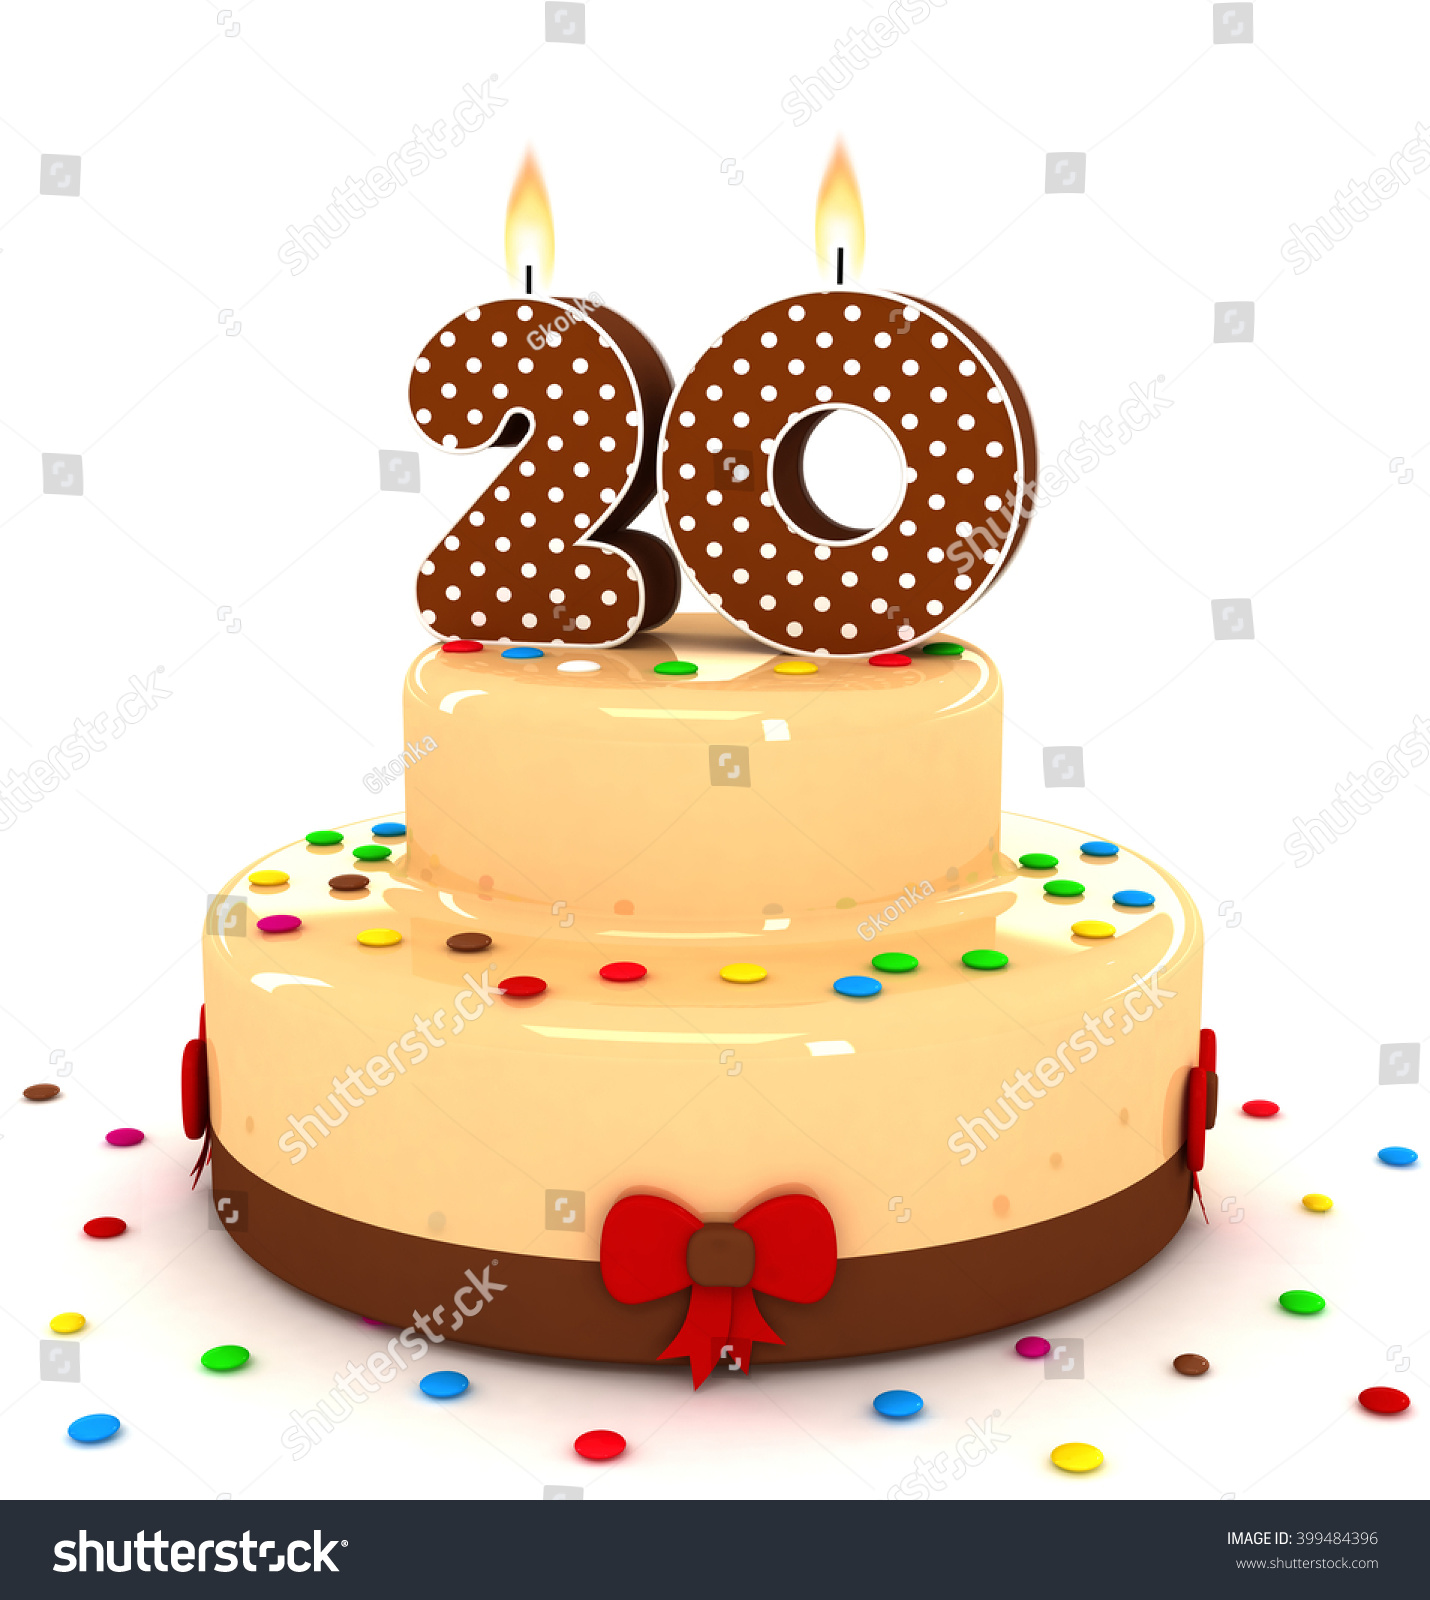 3d Cute Number 20 Twenty Rendering Colorful With Chocolate Birthday Cake Sweet Polka Dot